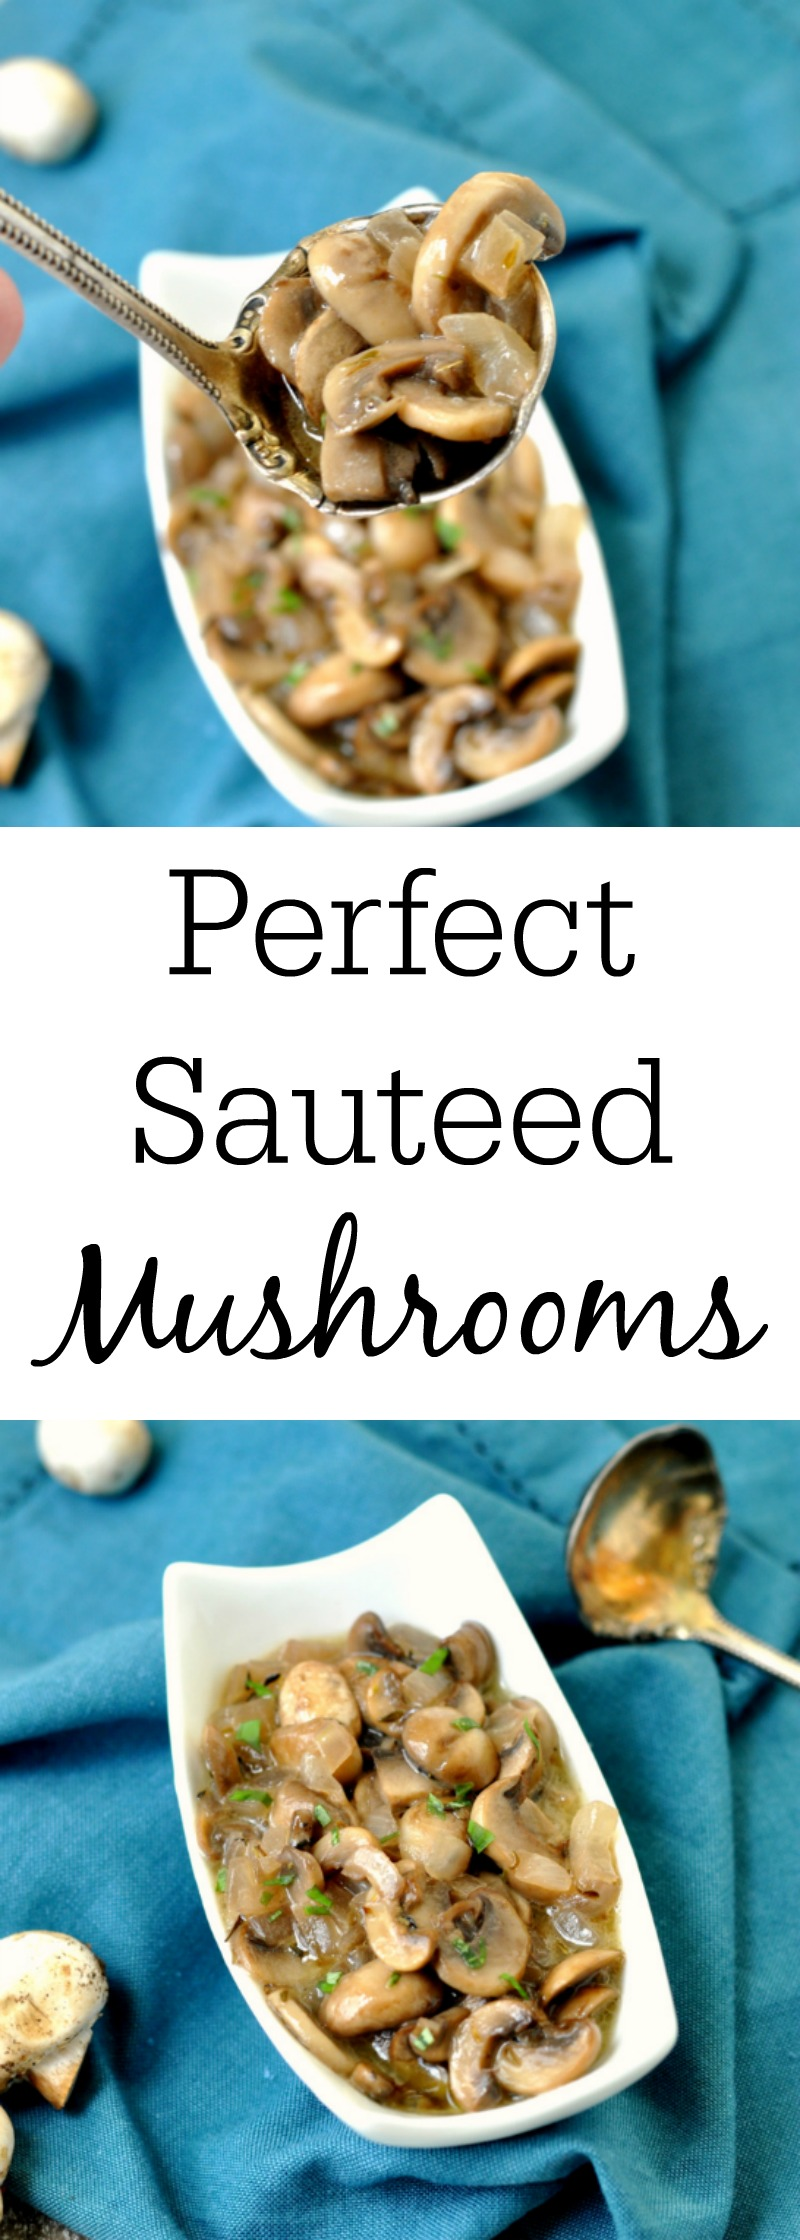 Perfectly Sauteed Mushrooms